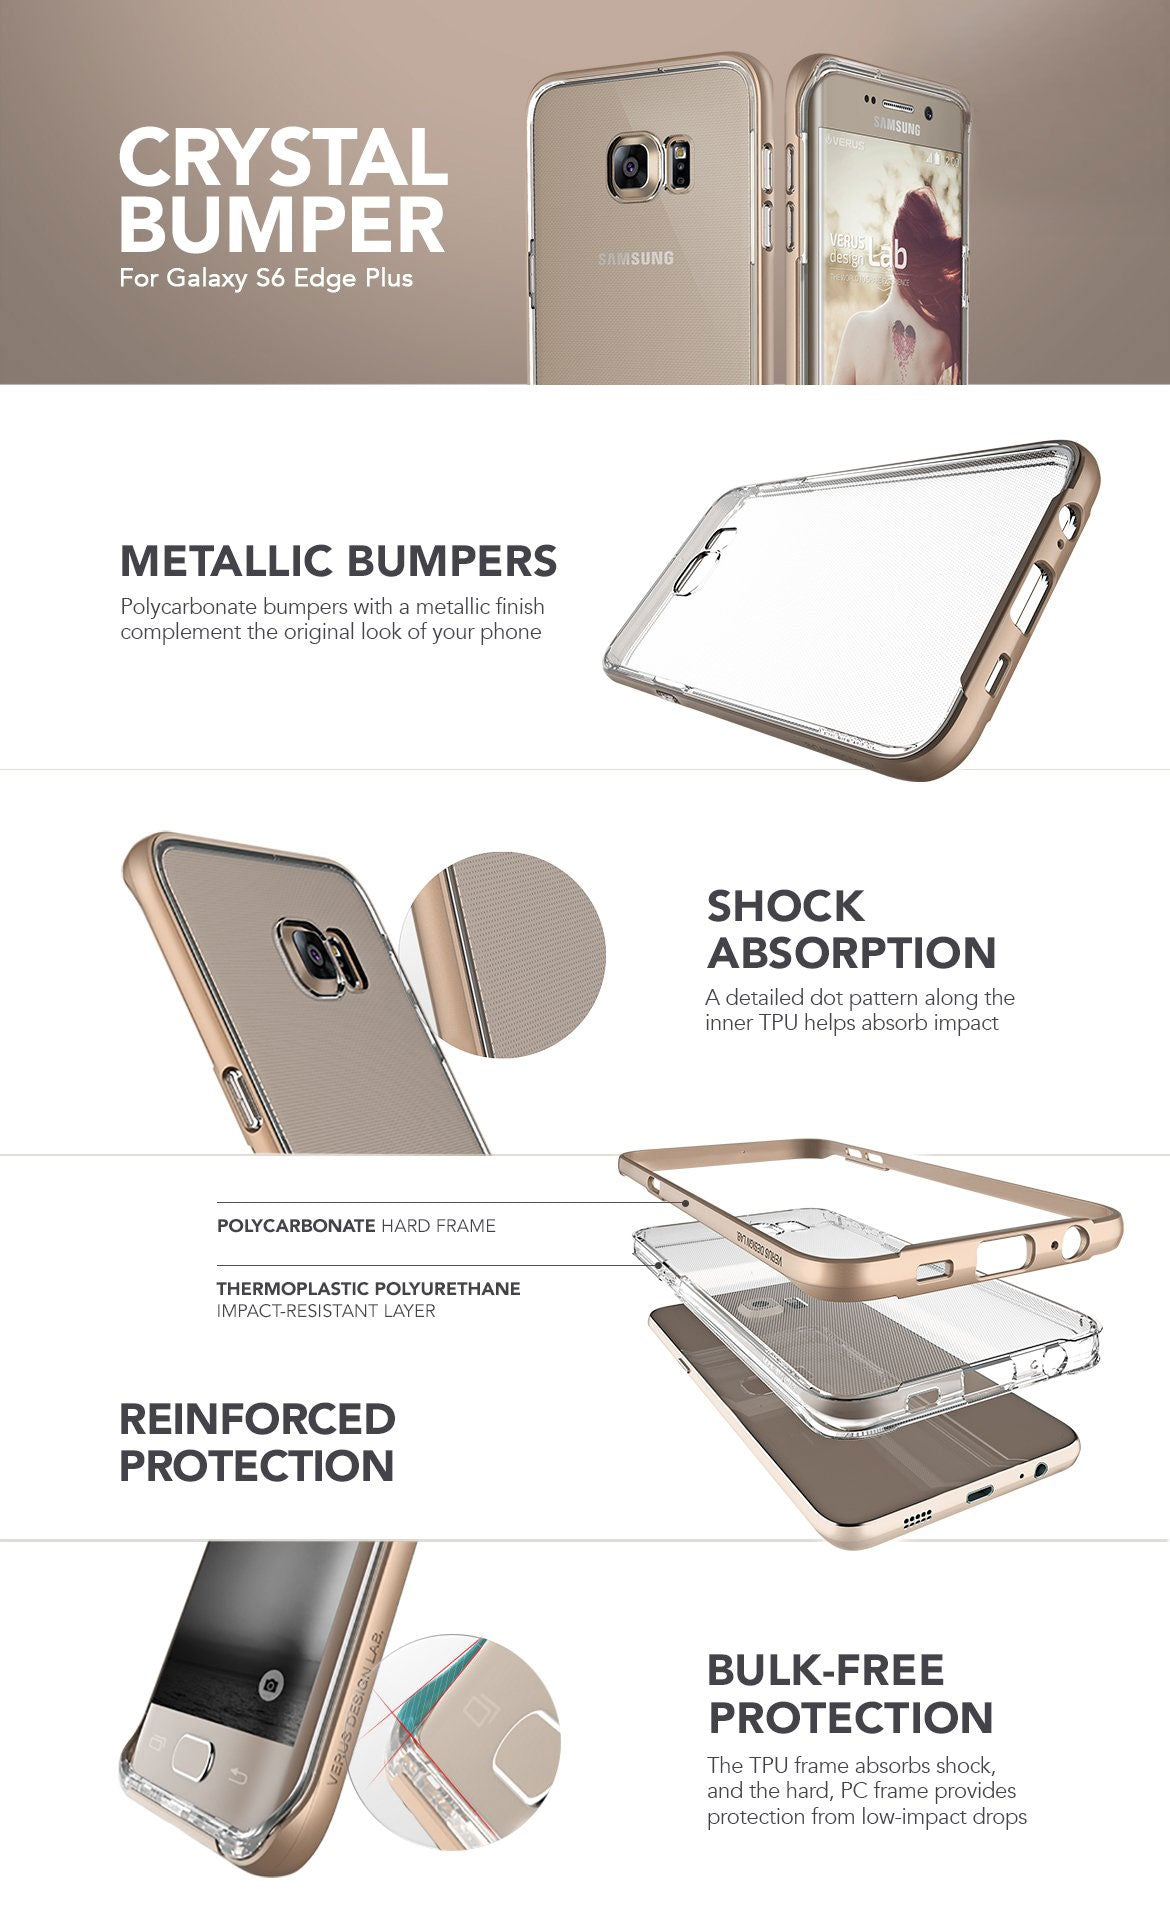 Samsung Galaxy S6 Edge Plus Case Crystal Bumper Series Vrs Design Protection Cases By